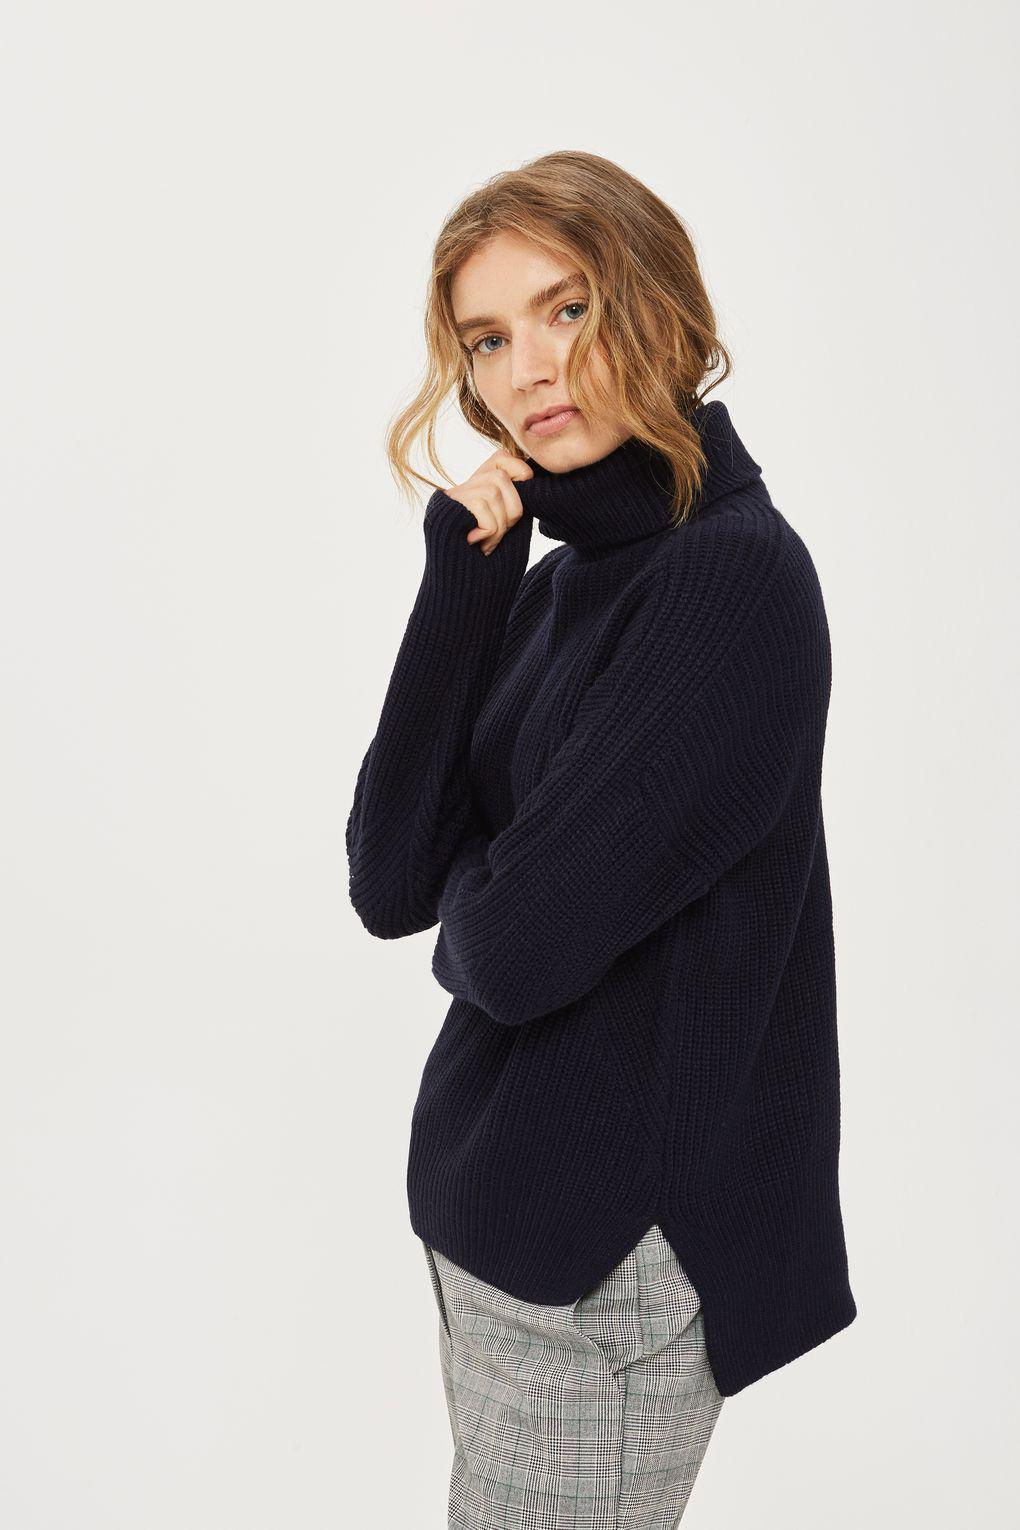 Lyst - TOPSHOP Ribbed Roll Neck Jumper in Blue f8cbff798